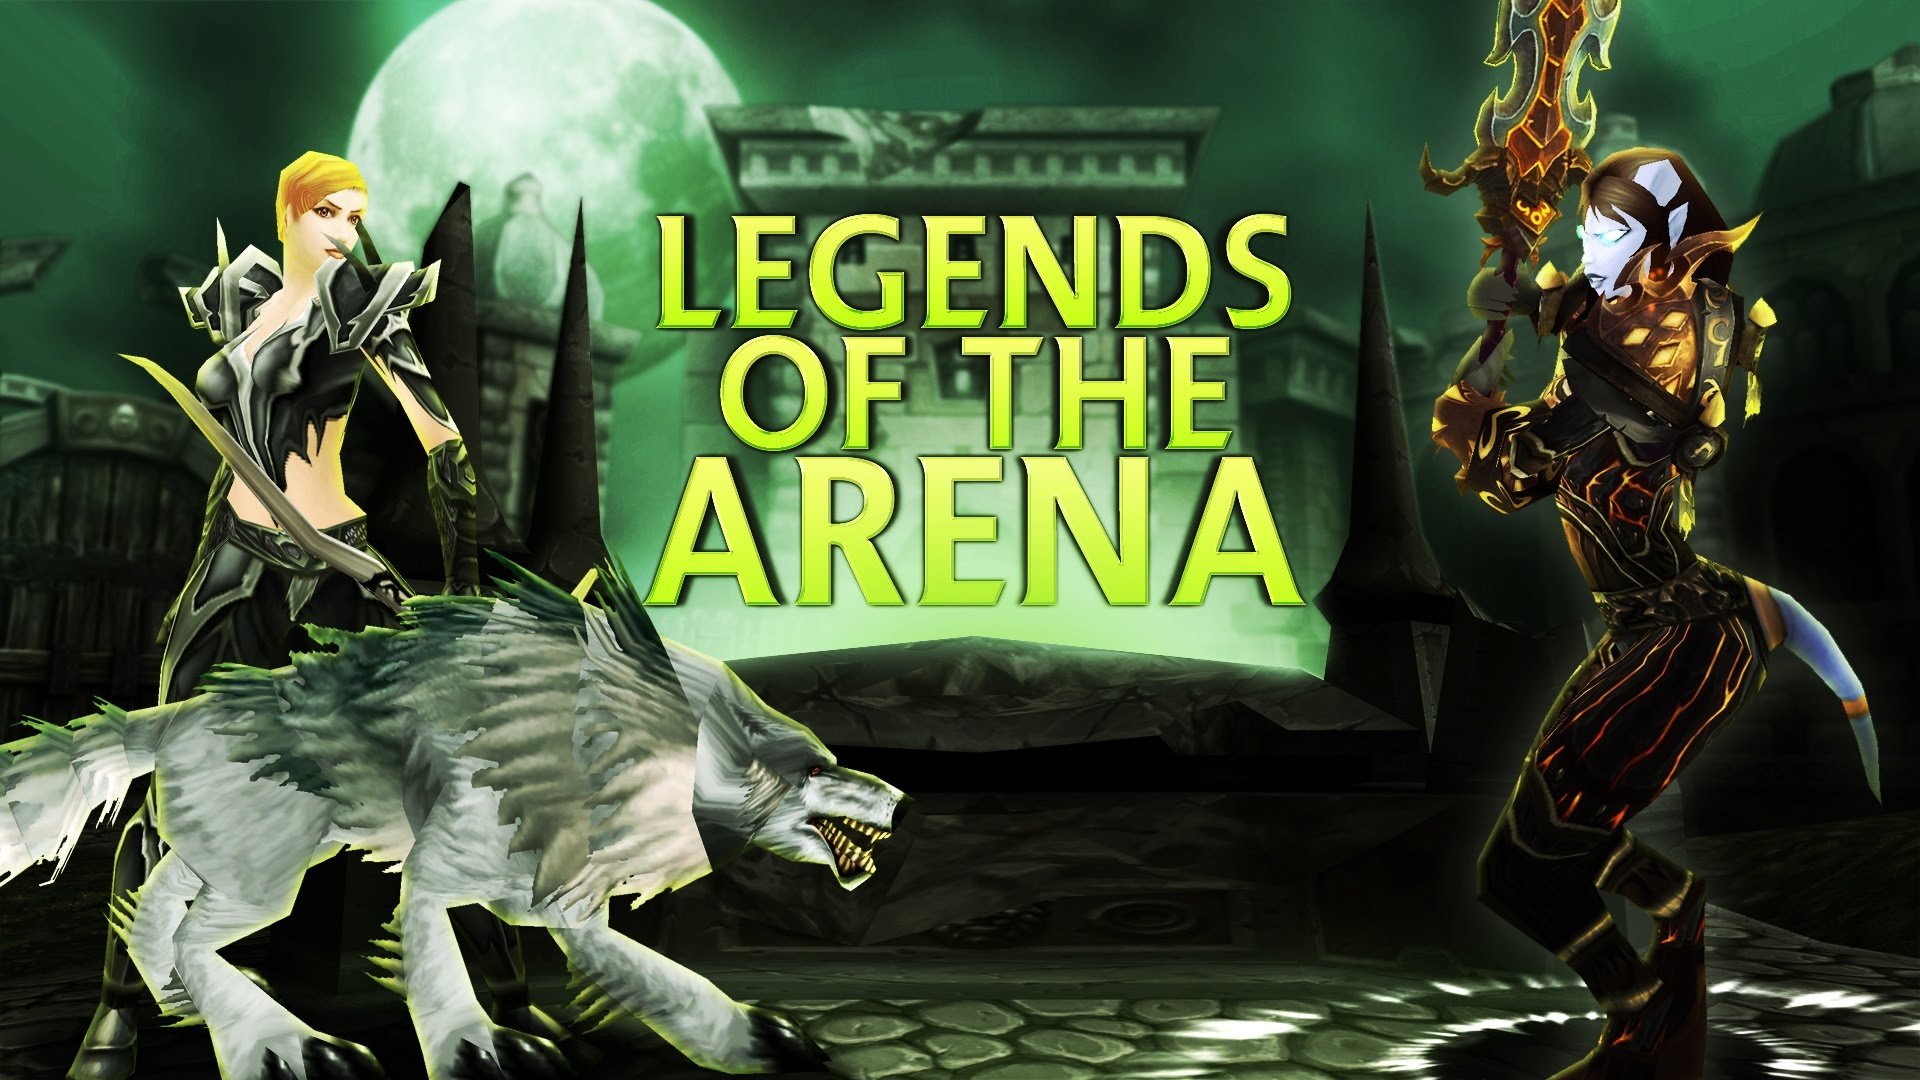 Swifty Legends of the Arena – Mooboxer vs. FrenchyGaming (Multiboxer Edition)